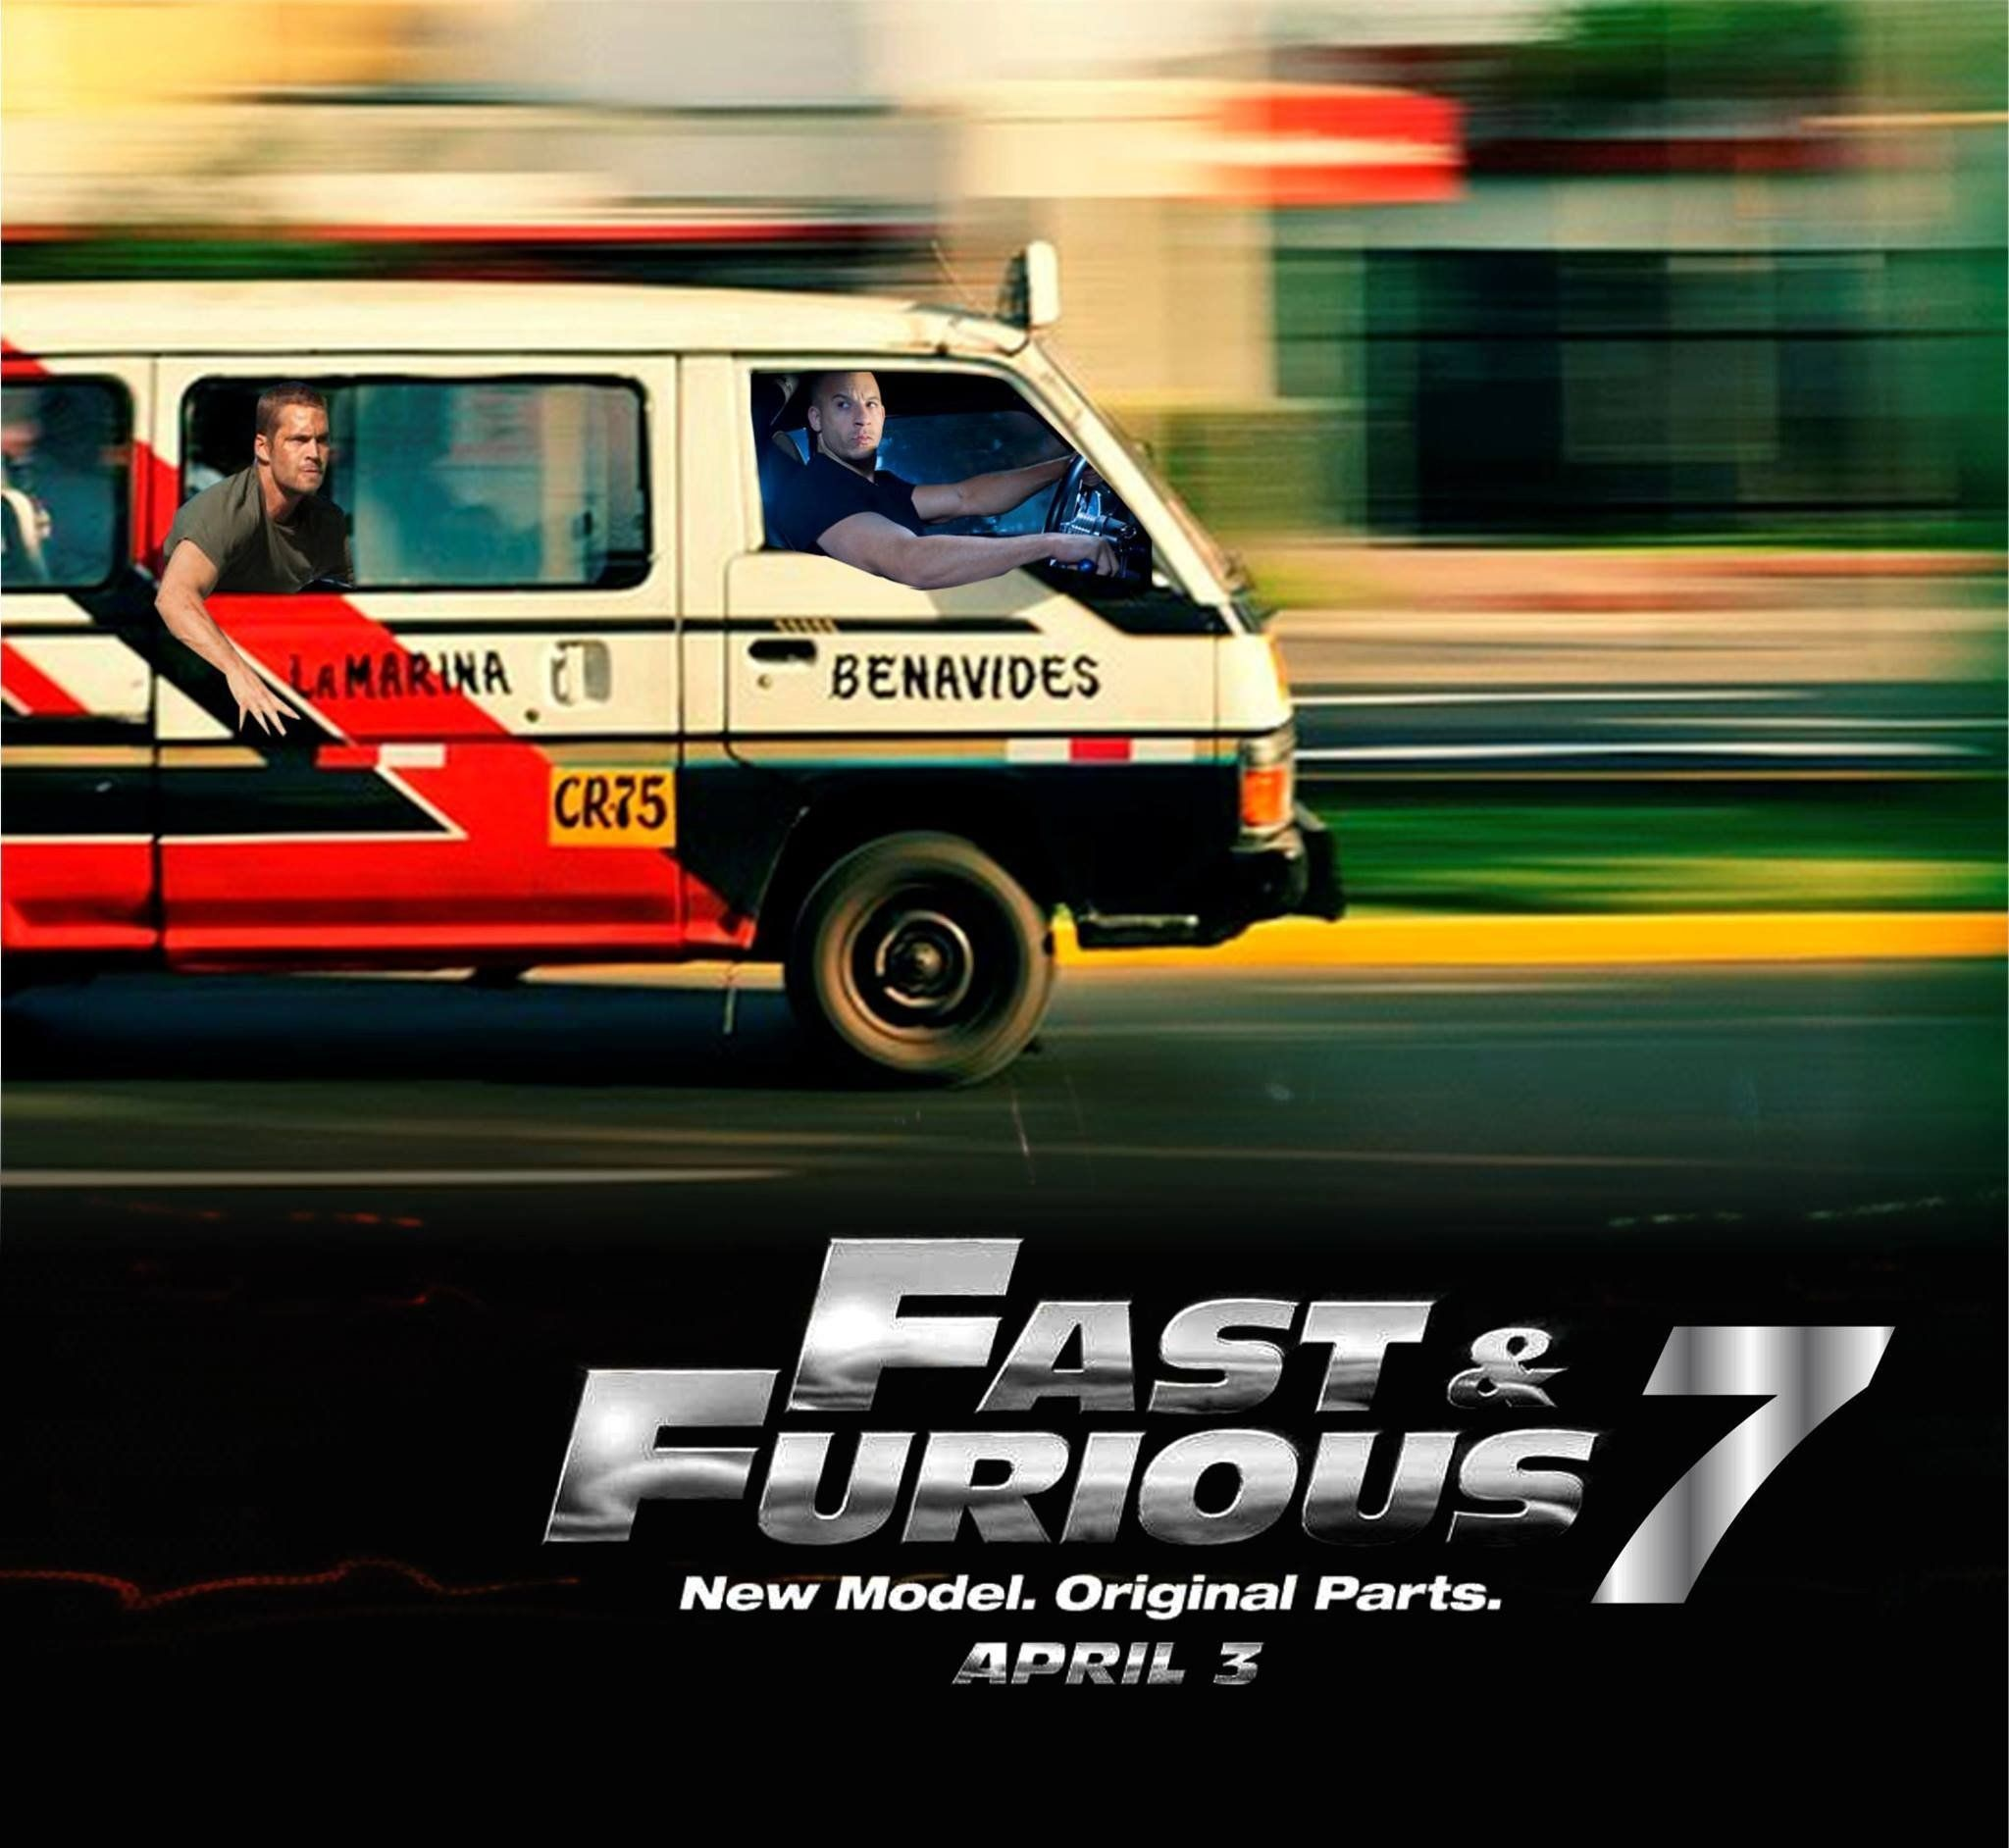 1920x1080 Fast And Furious All Roads Leads To Hd Wallpapers